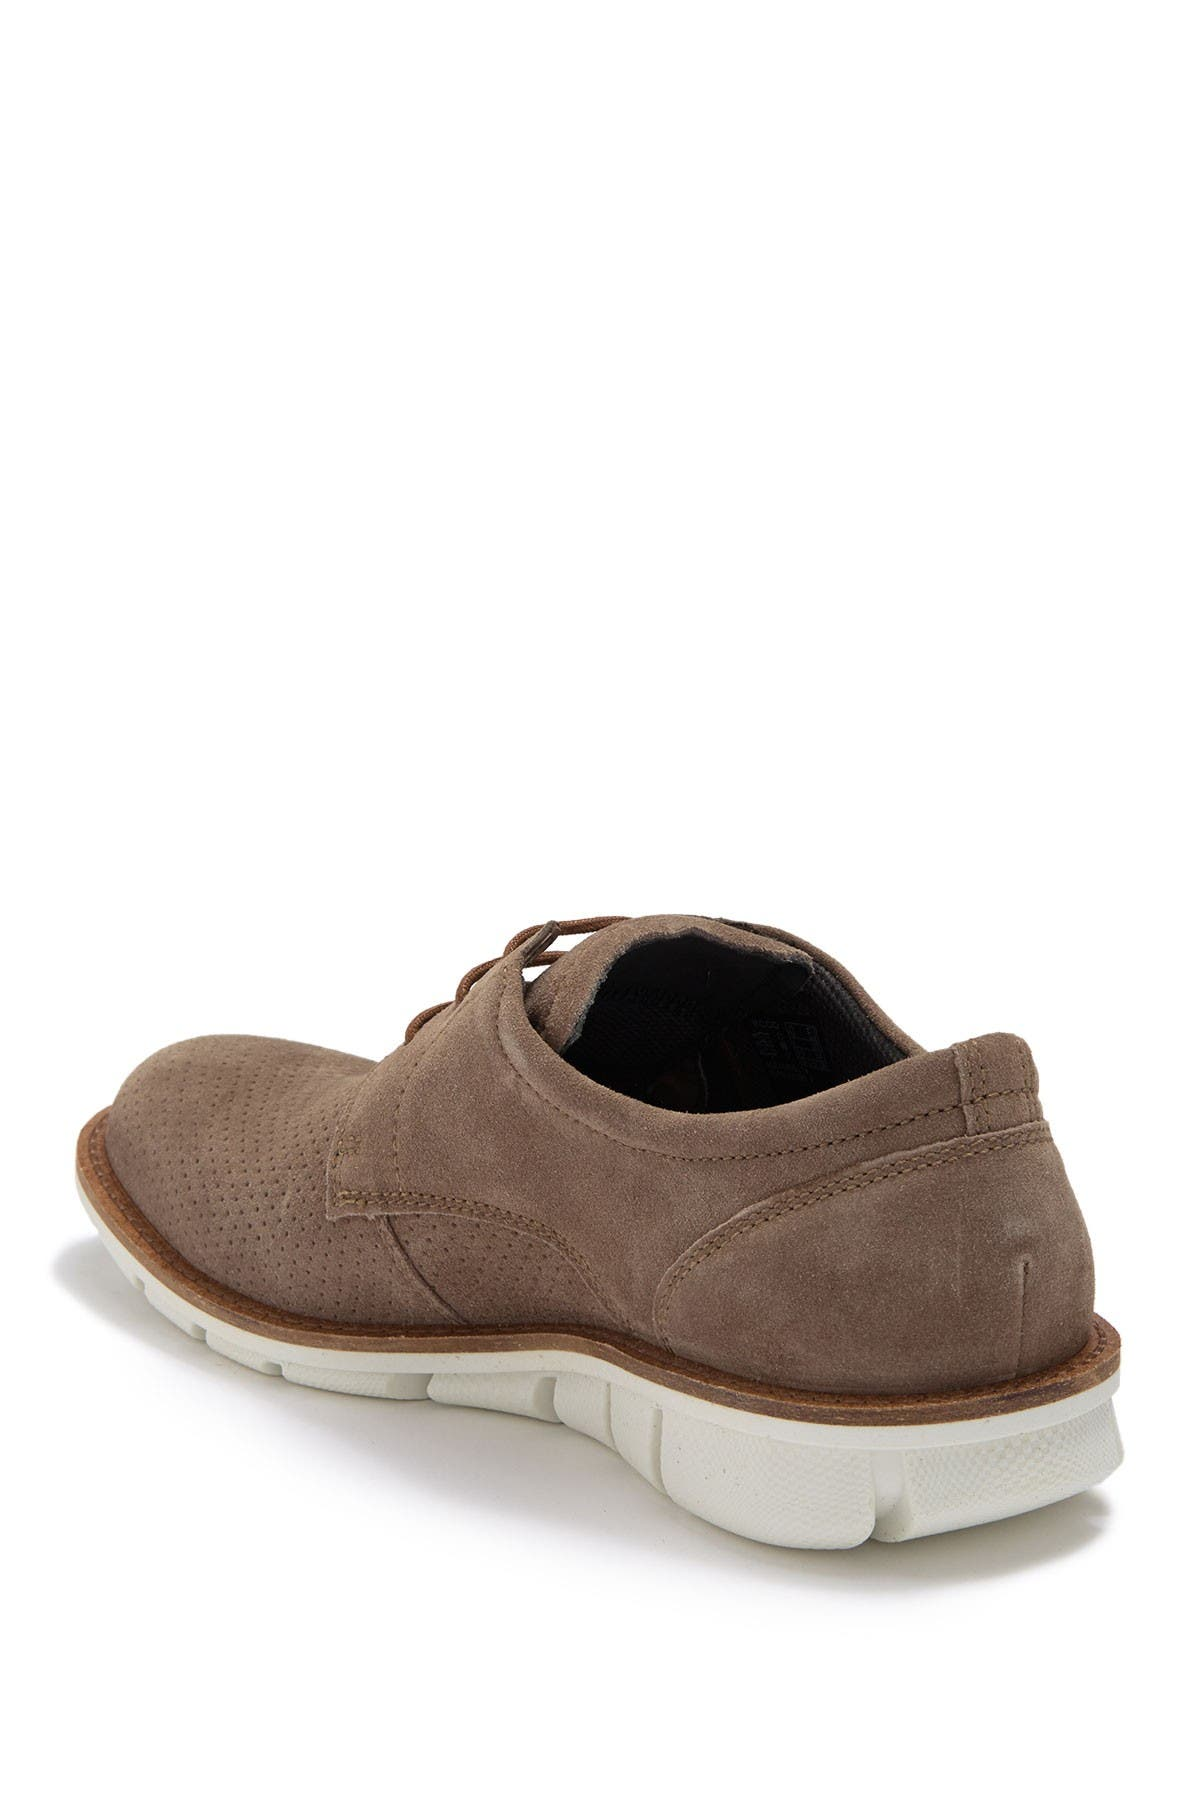 Image of ECCO Jeremy Modern Oxford